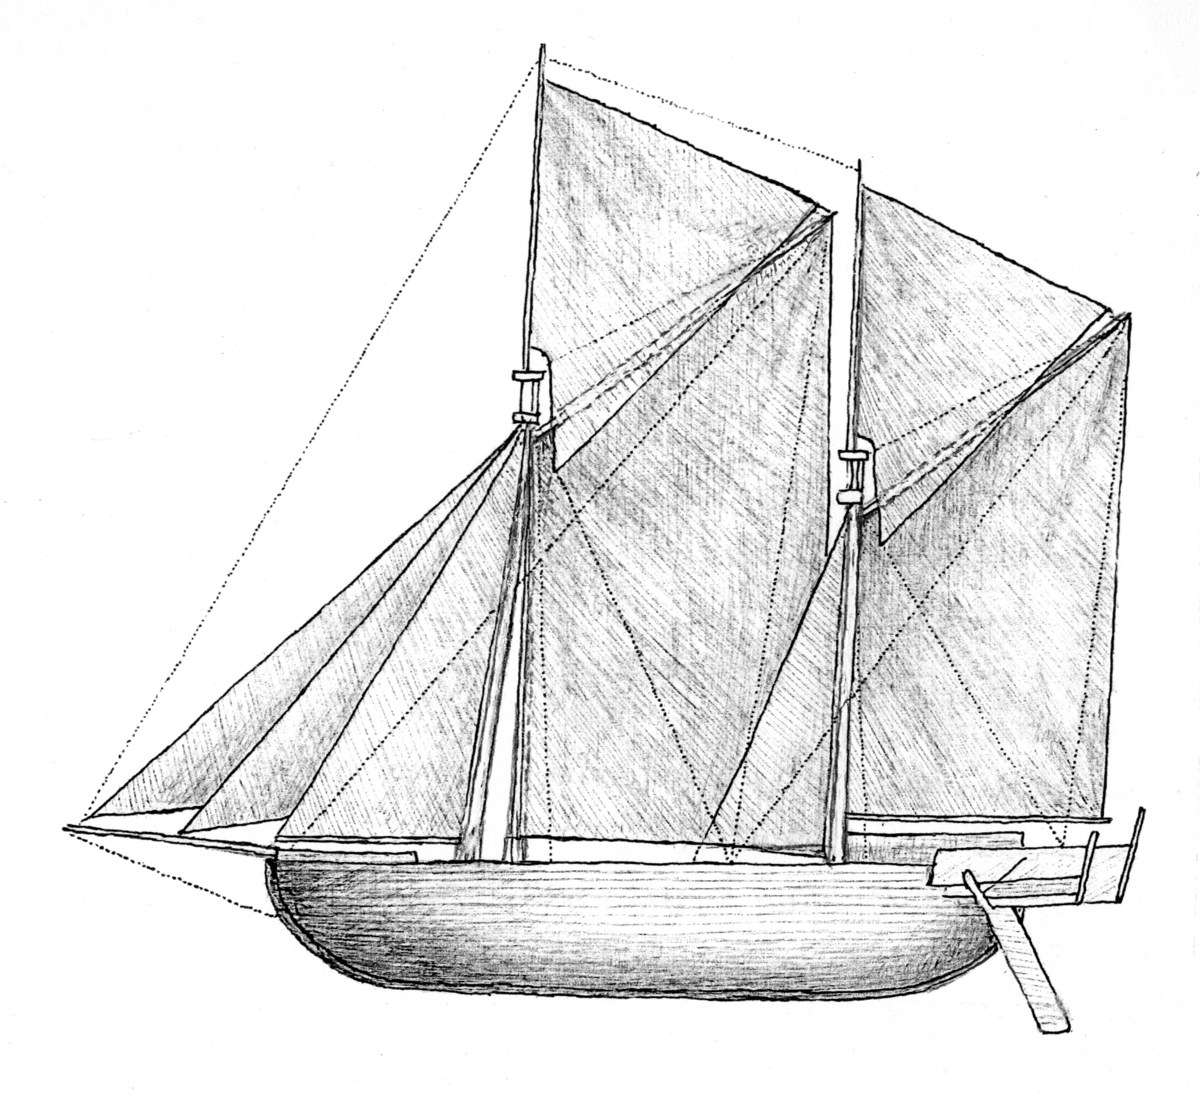 Boats in Sulawesi: An illustrated journey - Australian